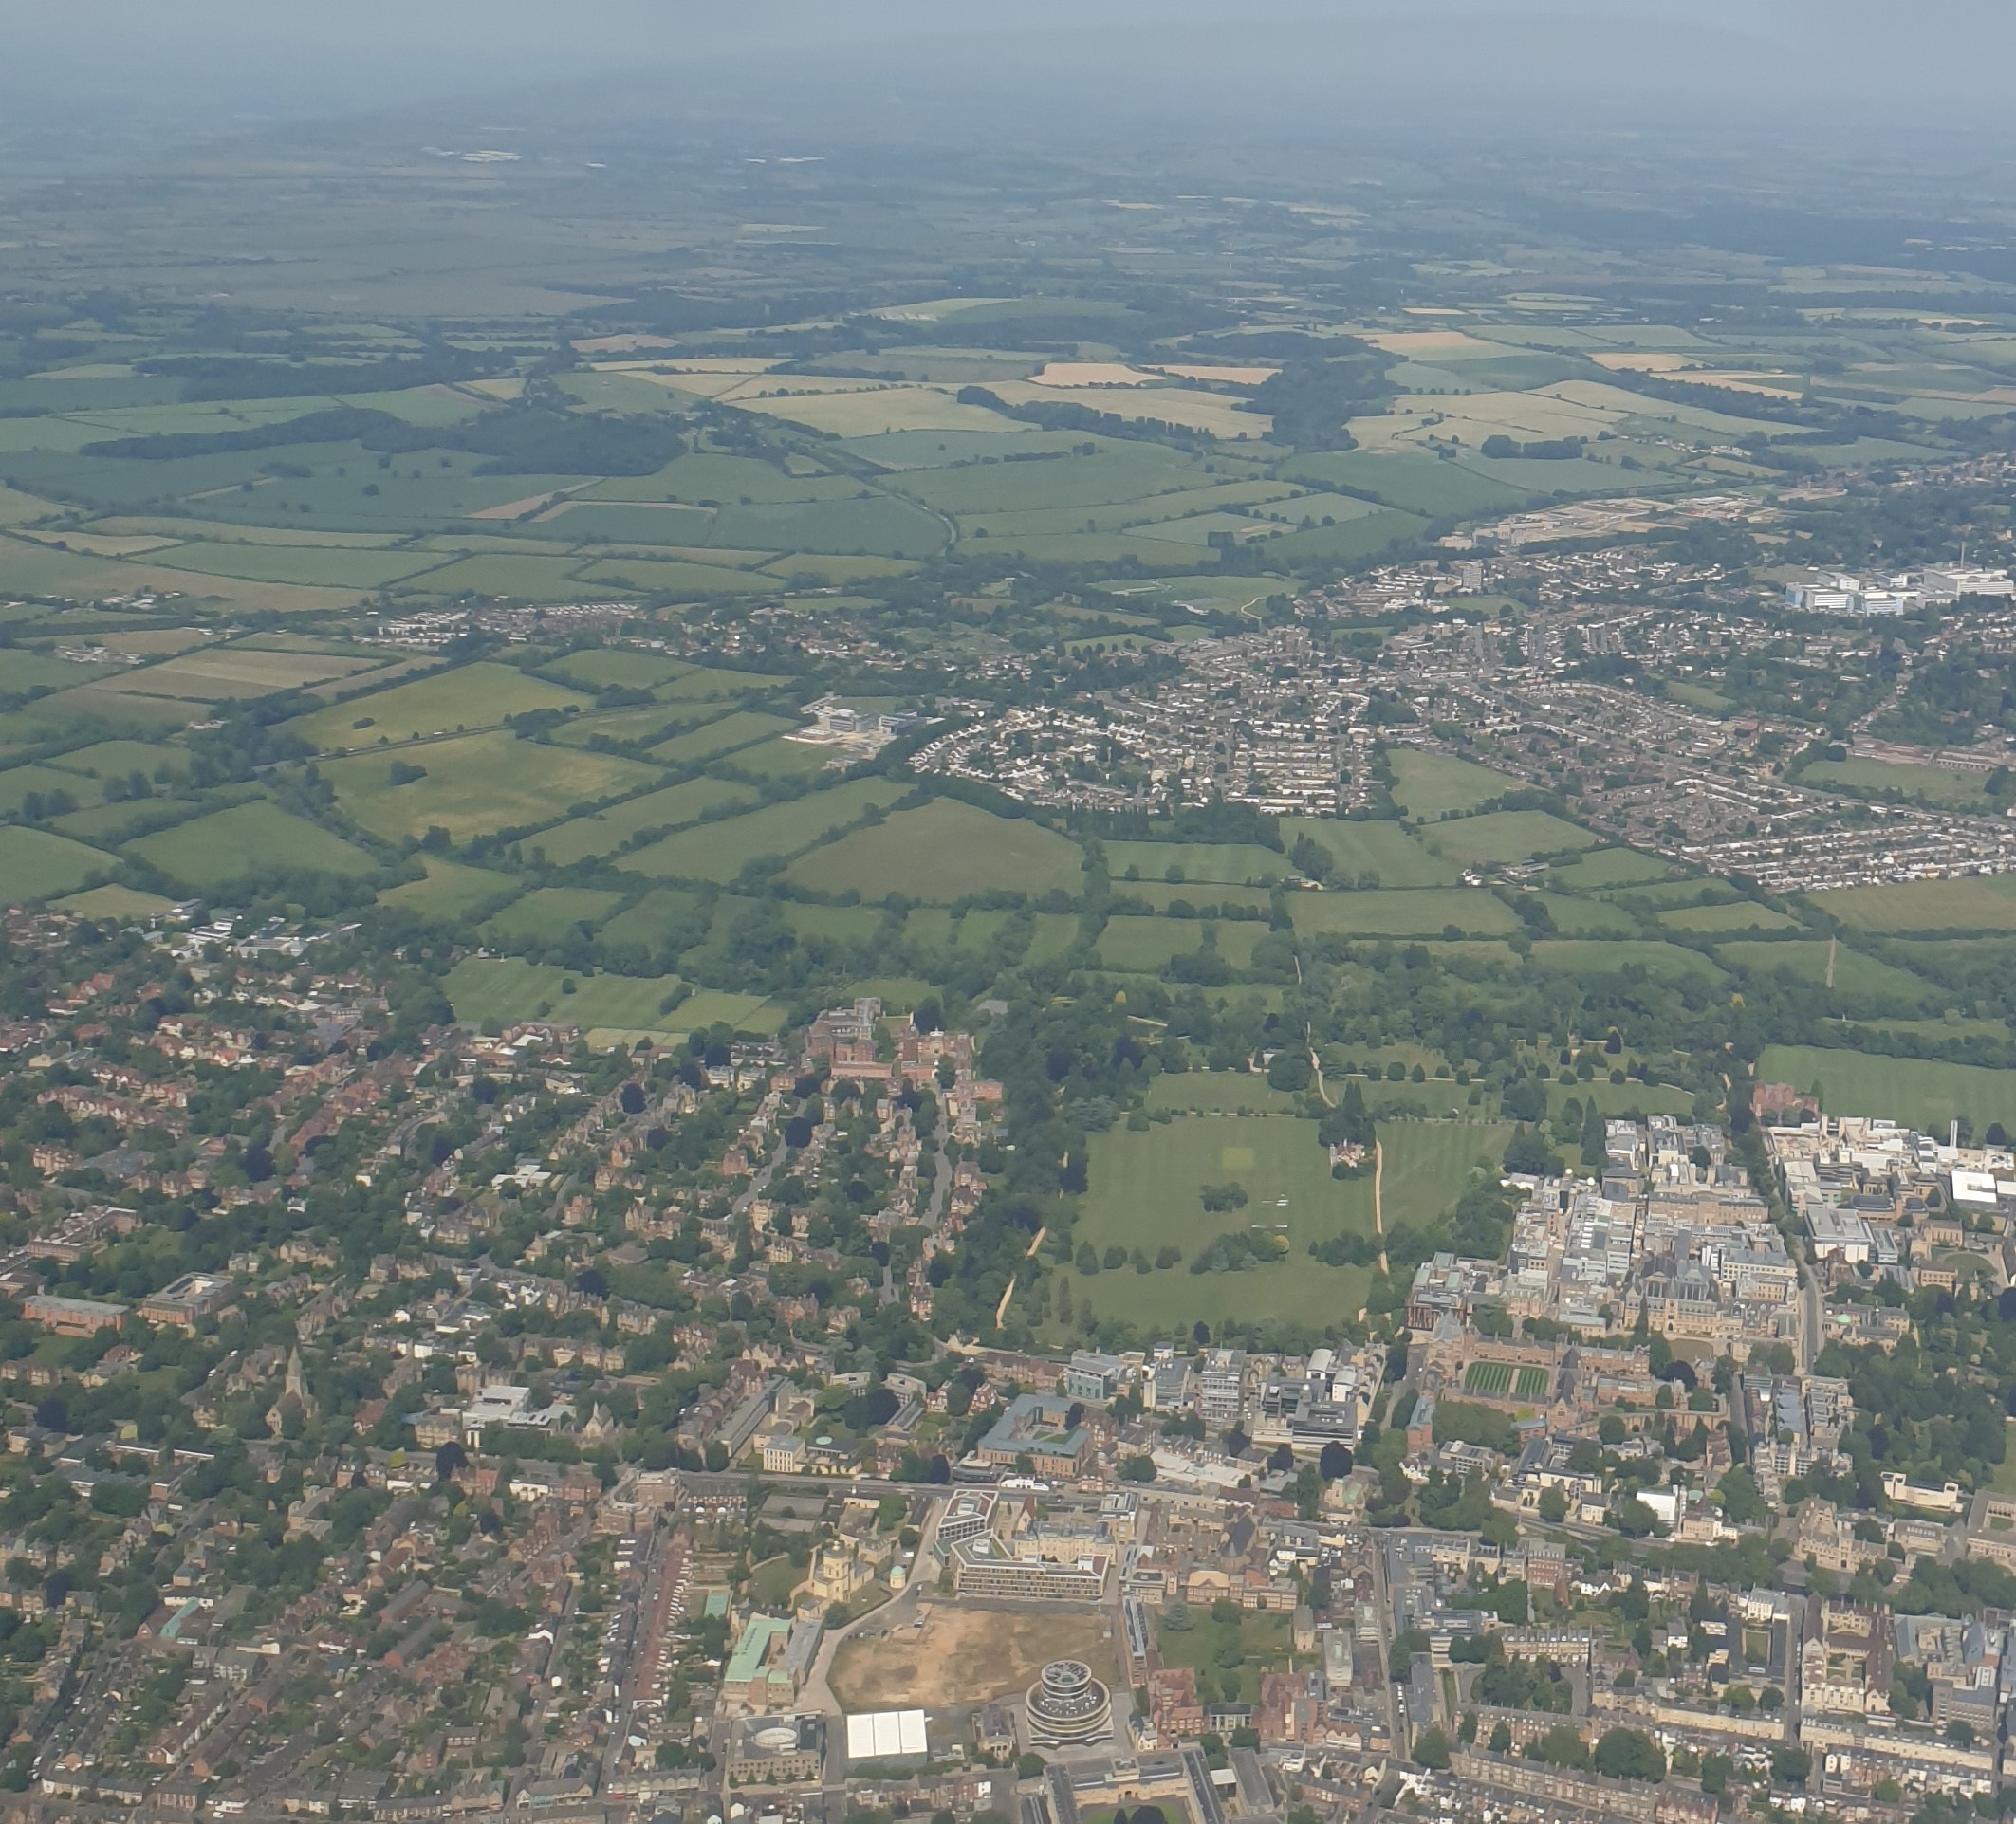 Photograph taken from the air over Oxford city featuring the departmental buildings.